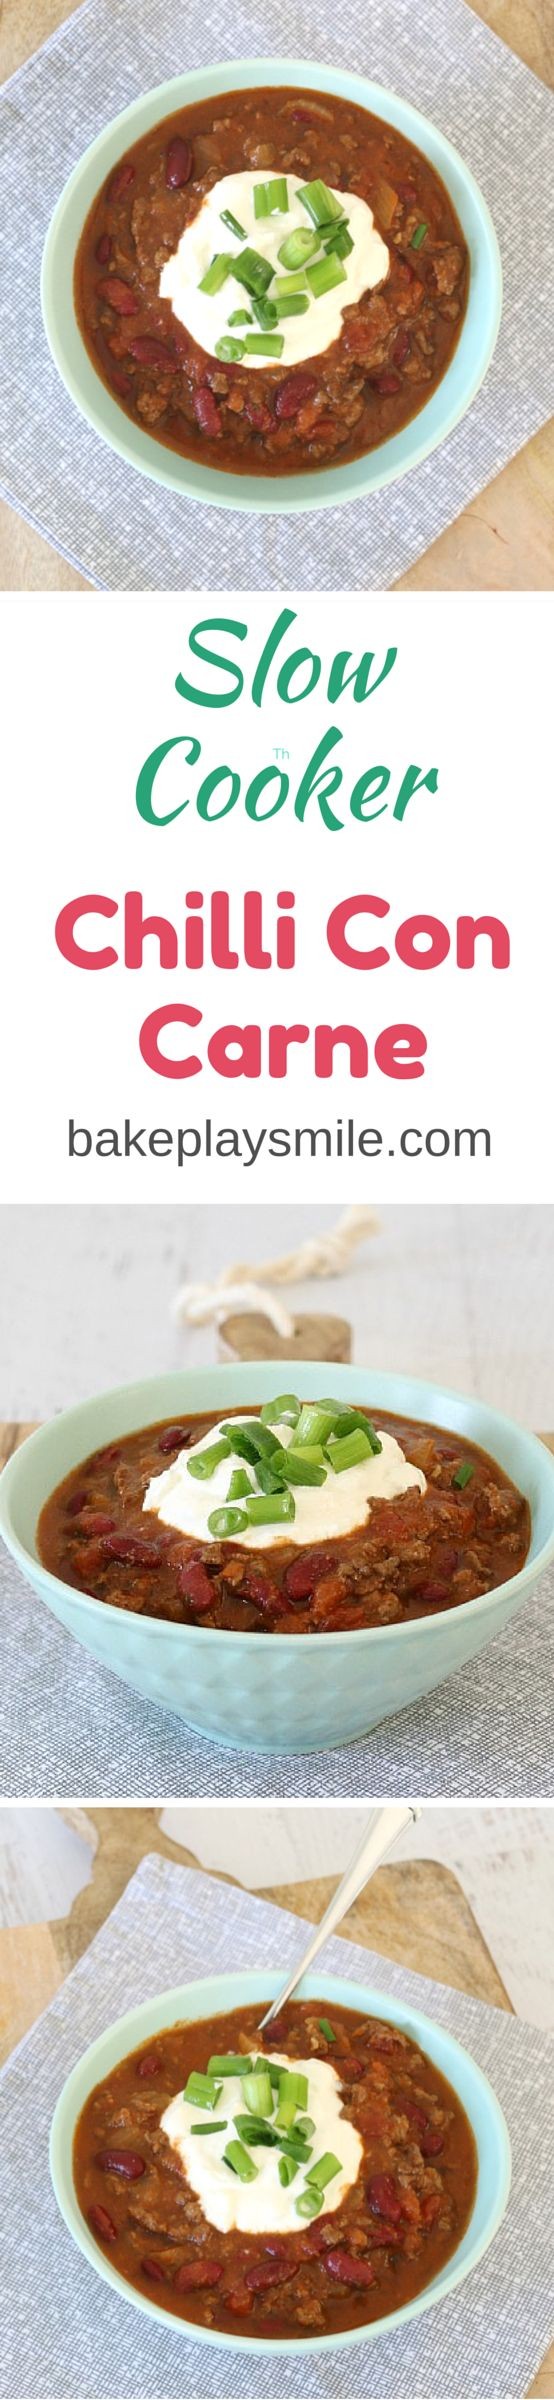 This is the best chilli con carne I've ever had. I love that you just pop everything into the slow cooker or crock pot and leave it to do it's thing! Love it!